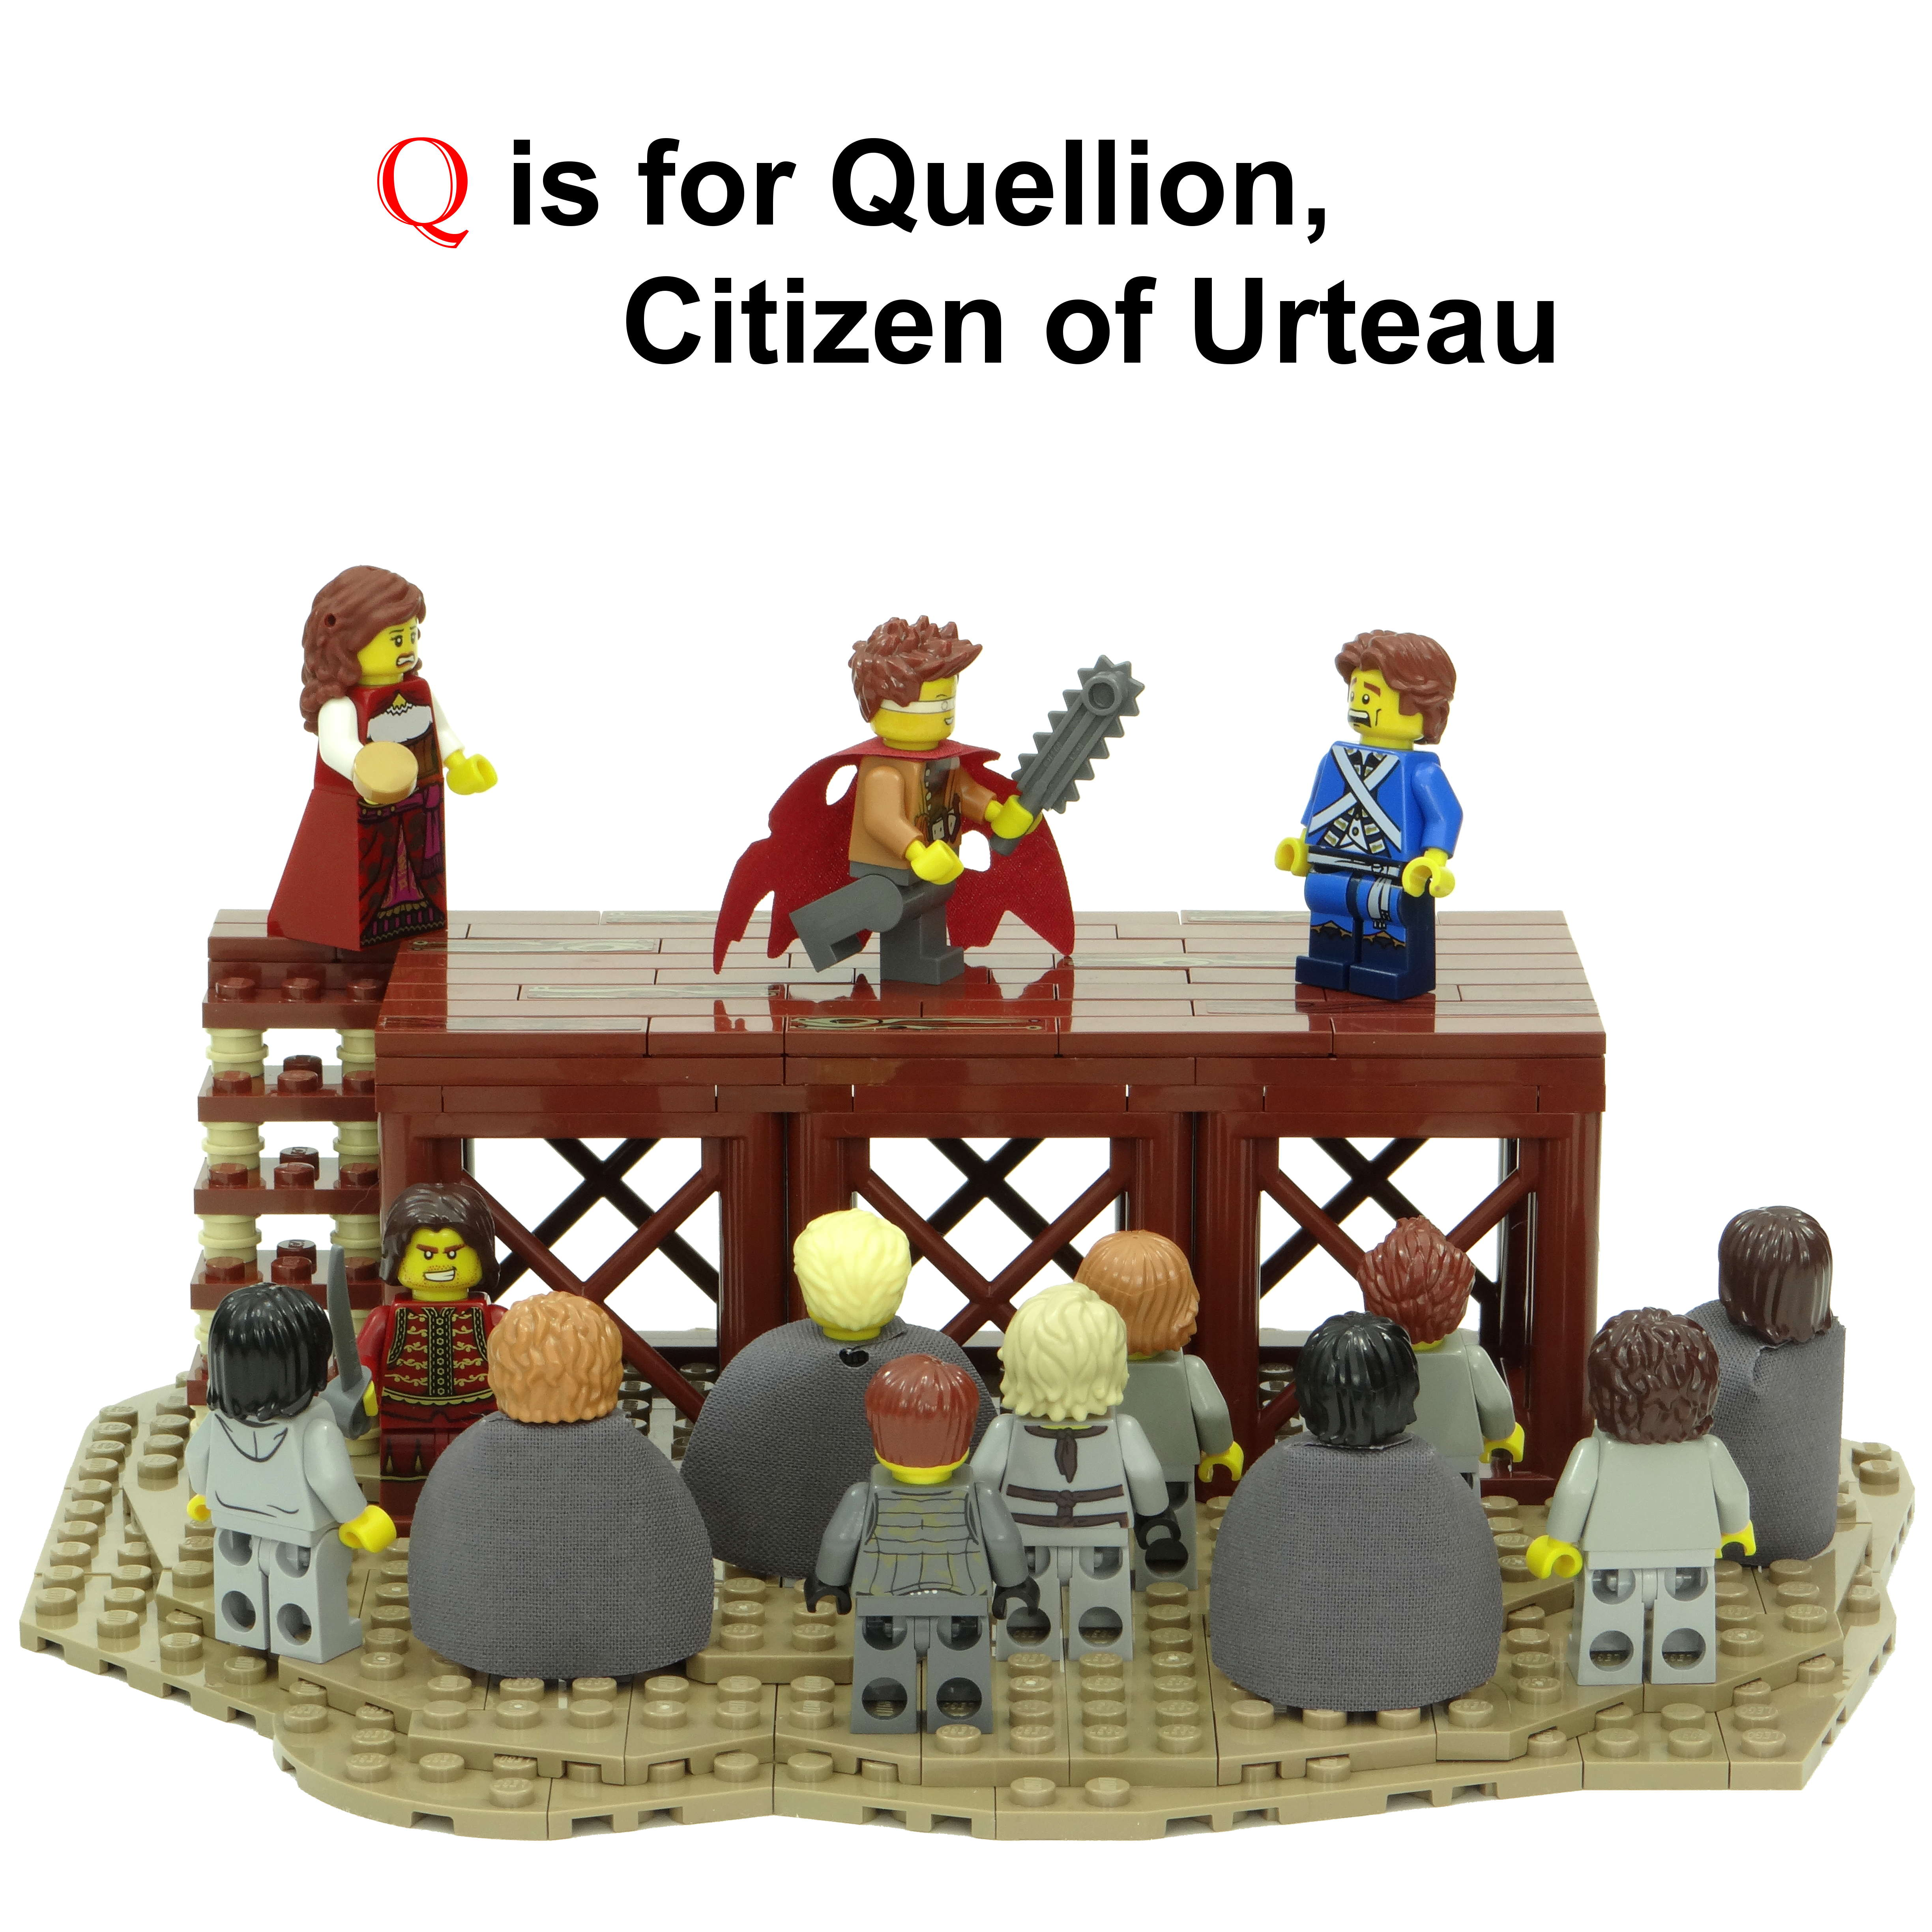 Q-is-for-Quellion